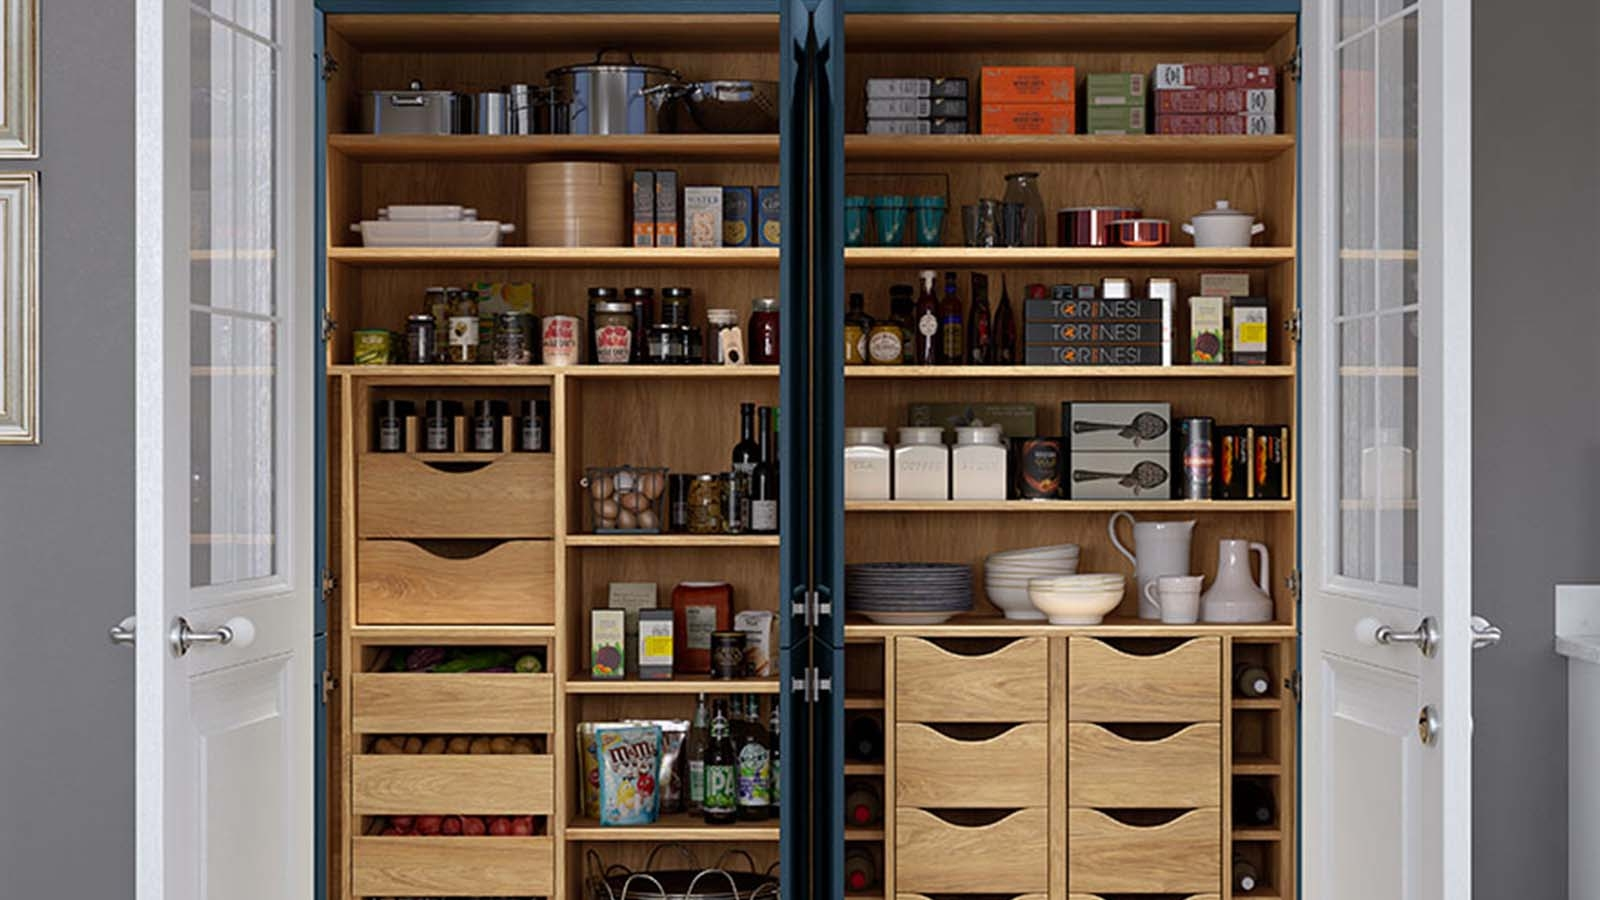 9 surprisingly clever ideas for modern kitchens organisation